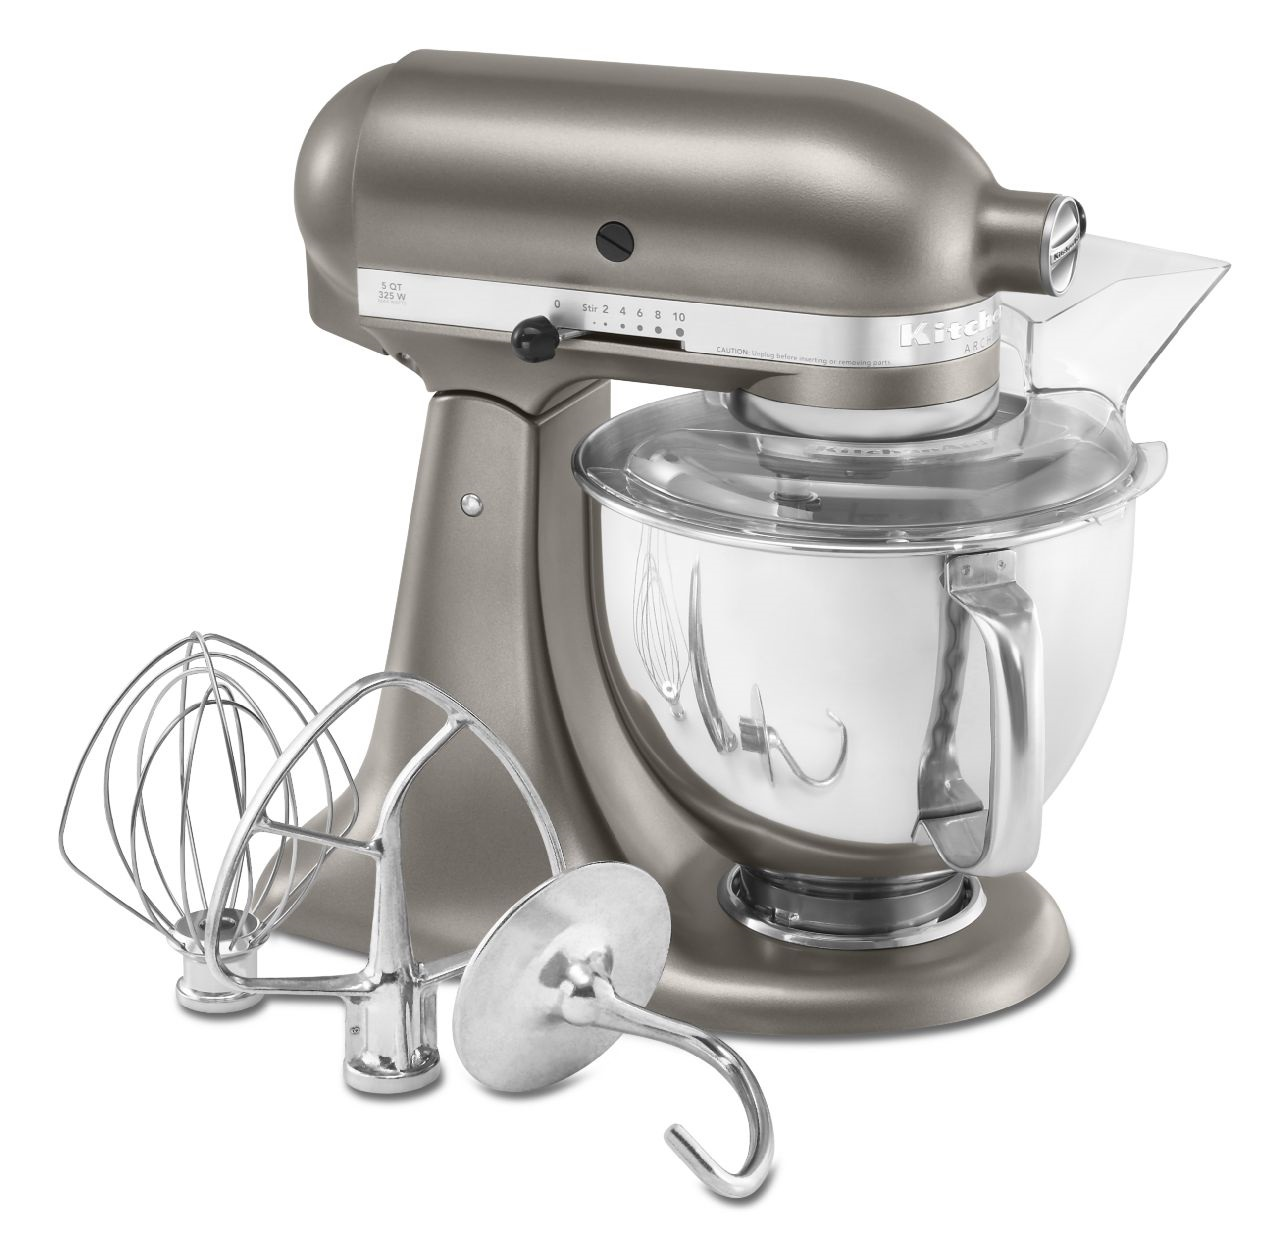 kitchenaid 4 5 quart tilt head stand mixer. kitchenaid-artisan-series-5-qt-tilt-head-stand- kitchenaid 4 5 quart tilt head stand mixer